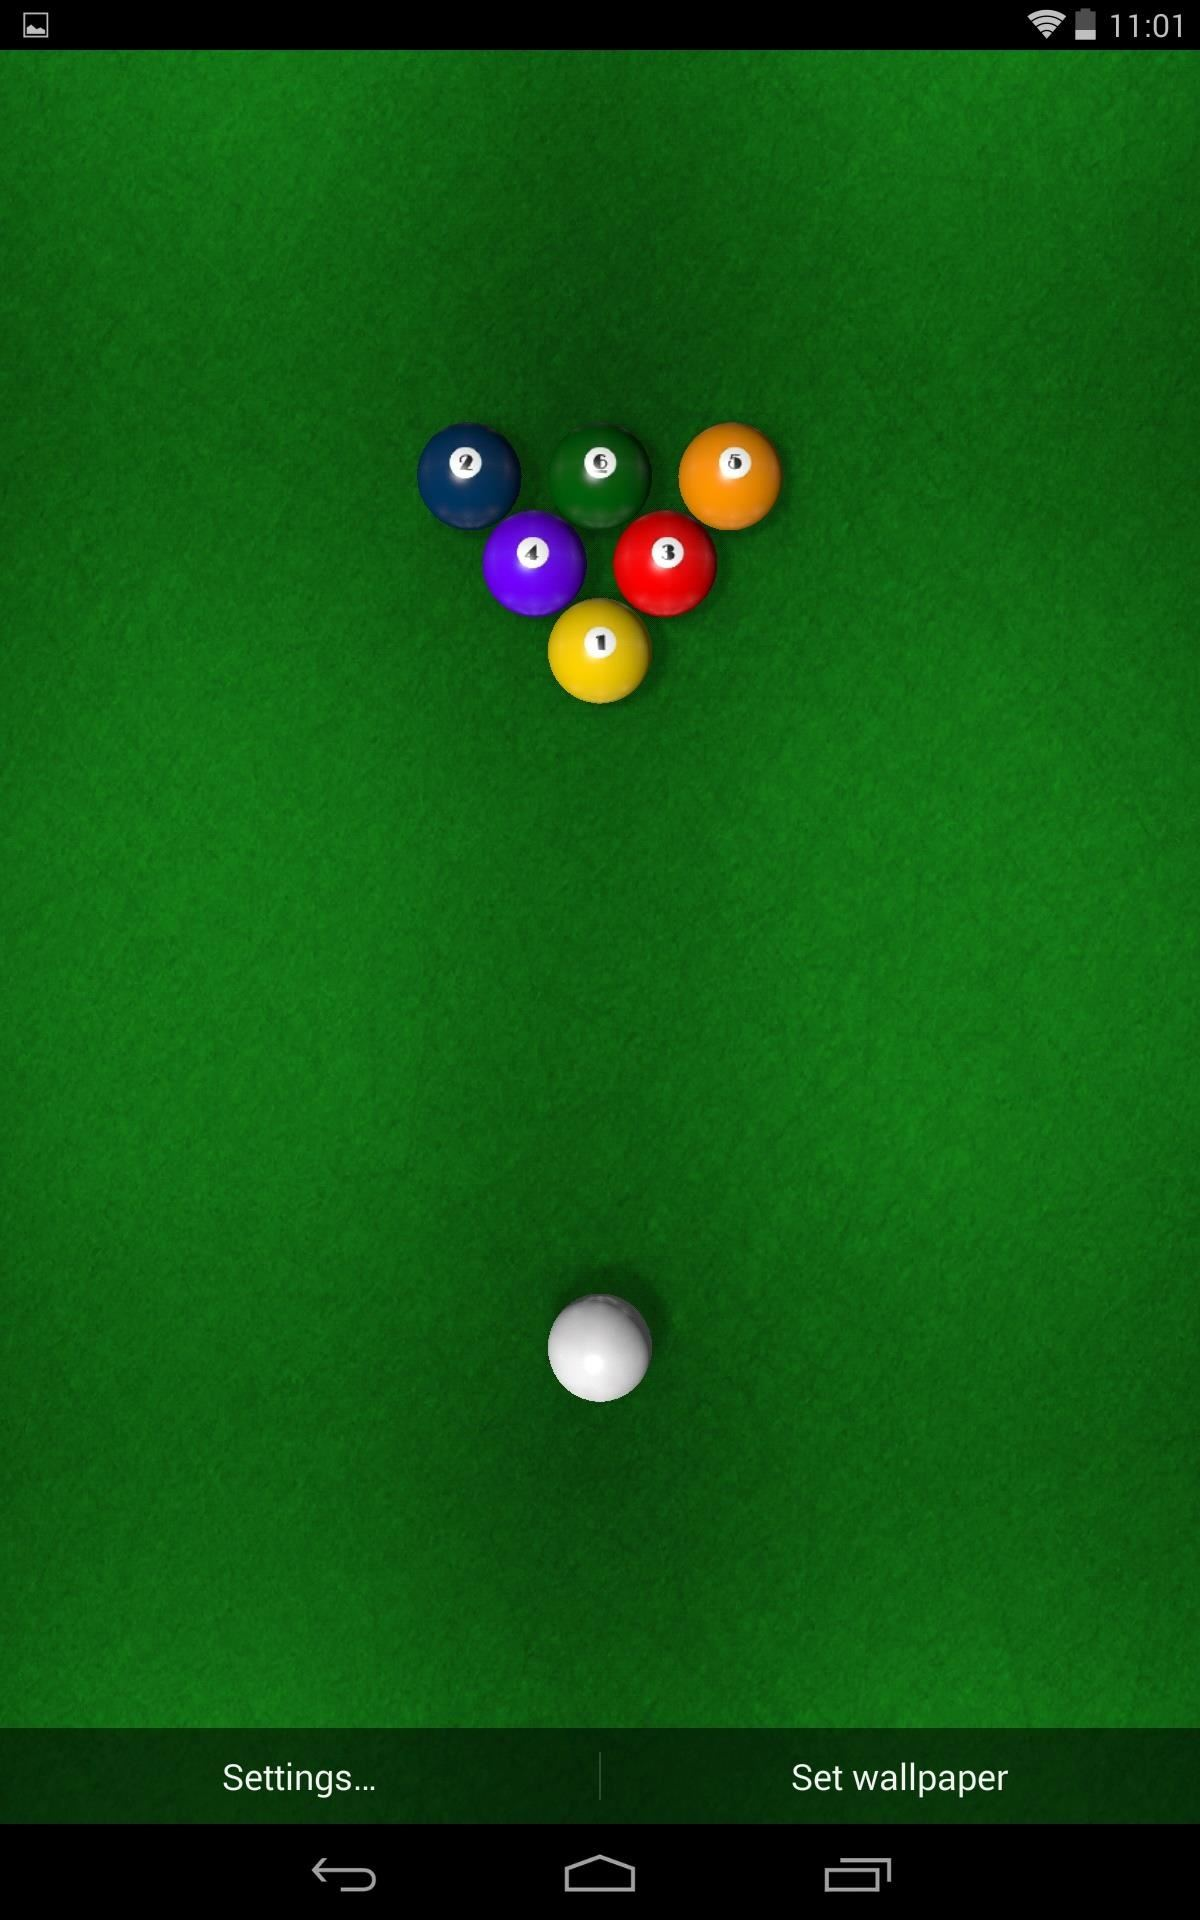 Boredom Killer: How to Play a Game of Pool Directly on Your Android Home Screen